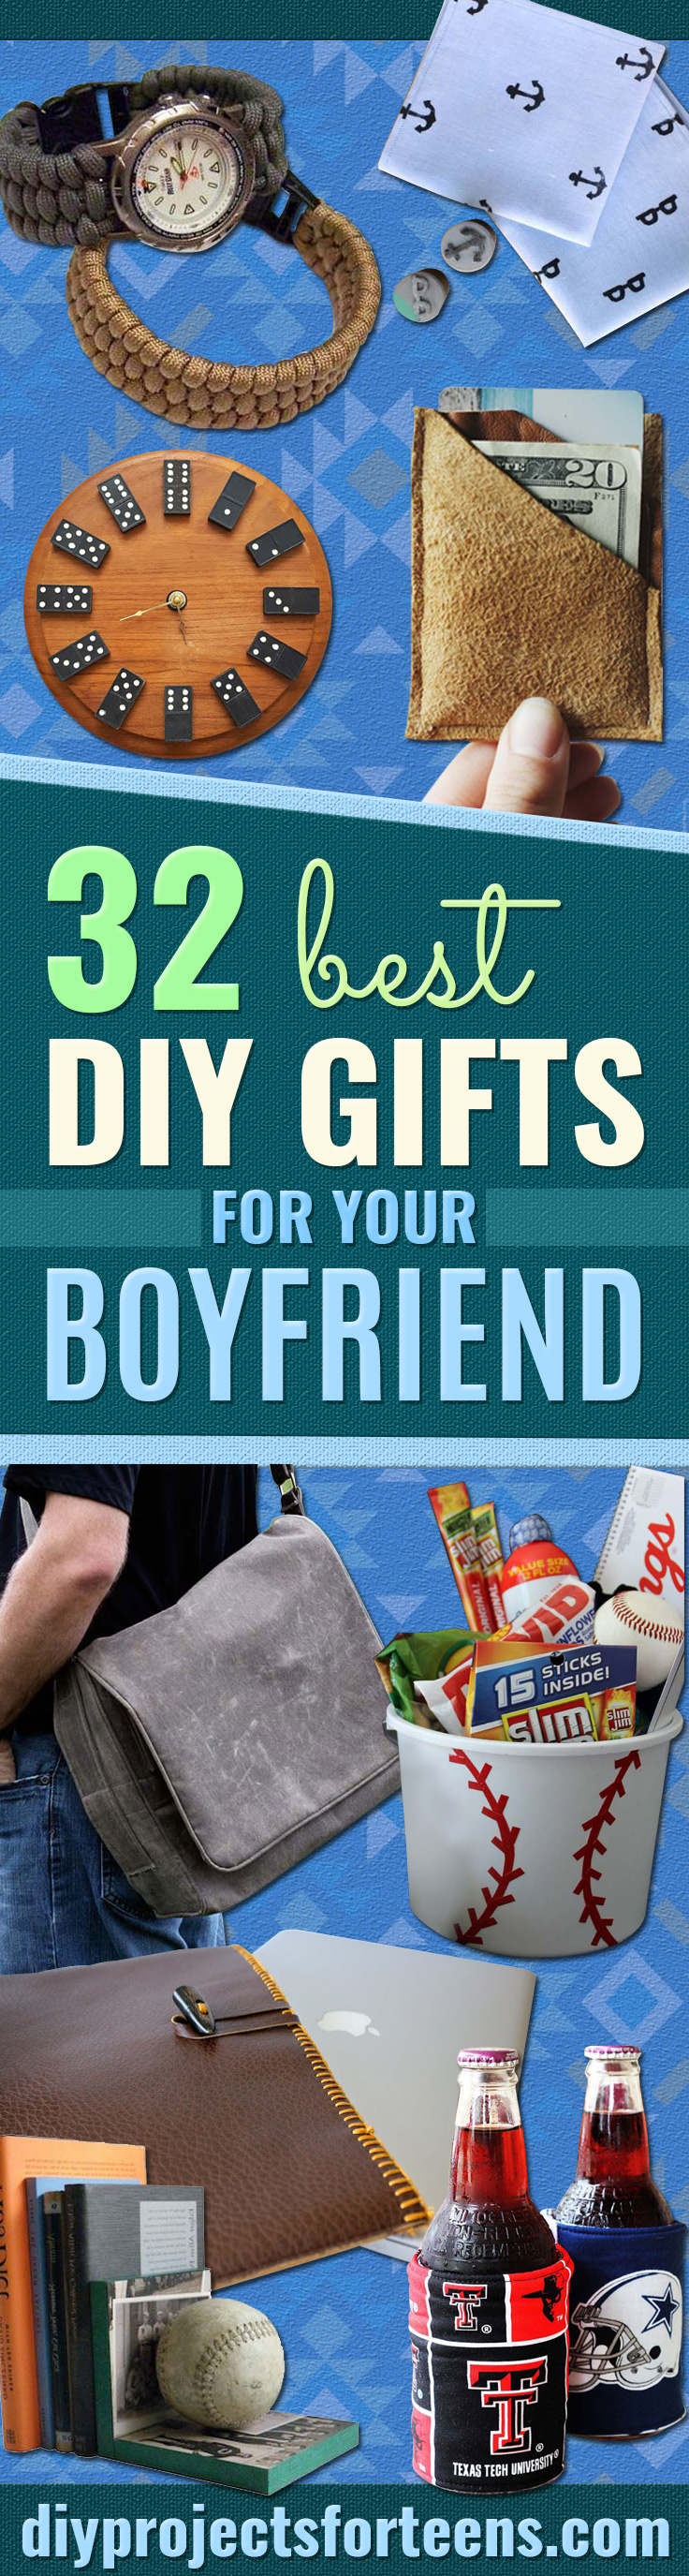 32 awesome diy gifts for your boyfriend diy projects for for What is the best gift for a boyfriend